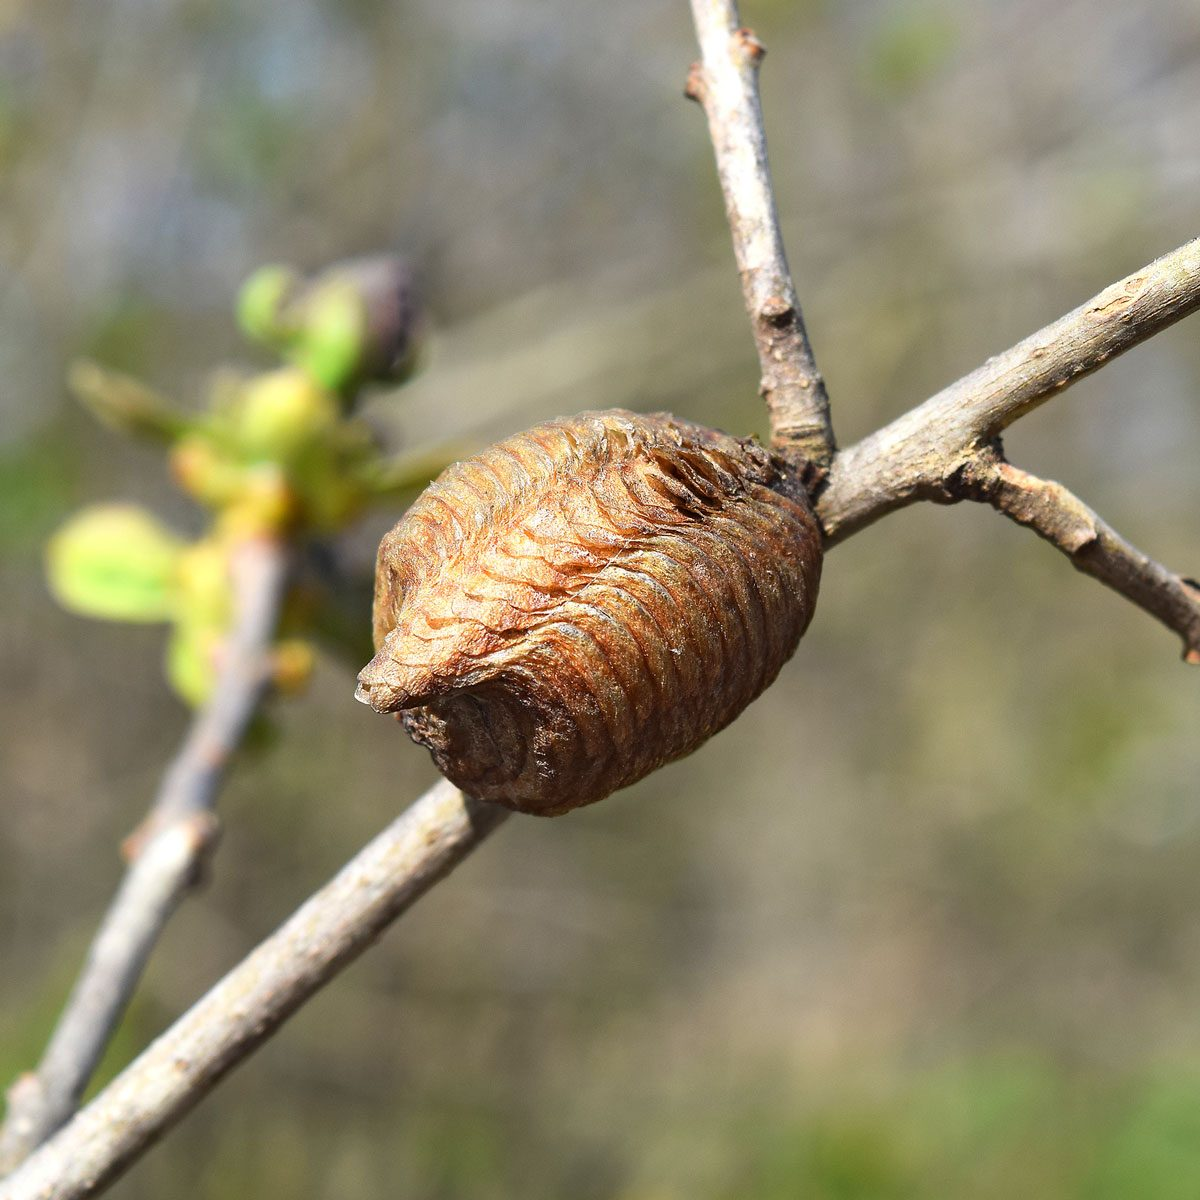 insect in cocoon in winter